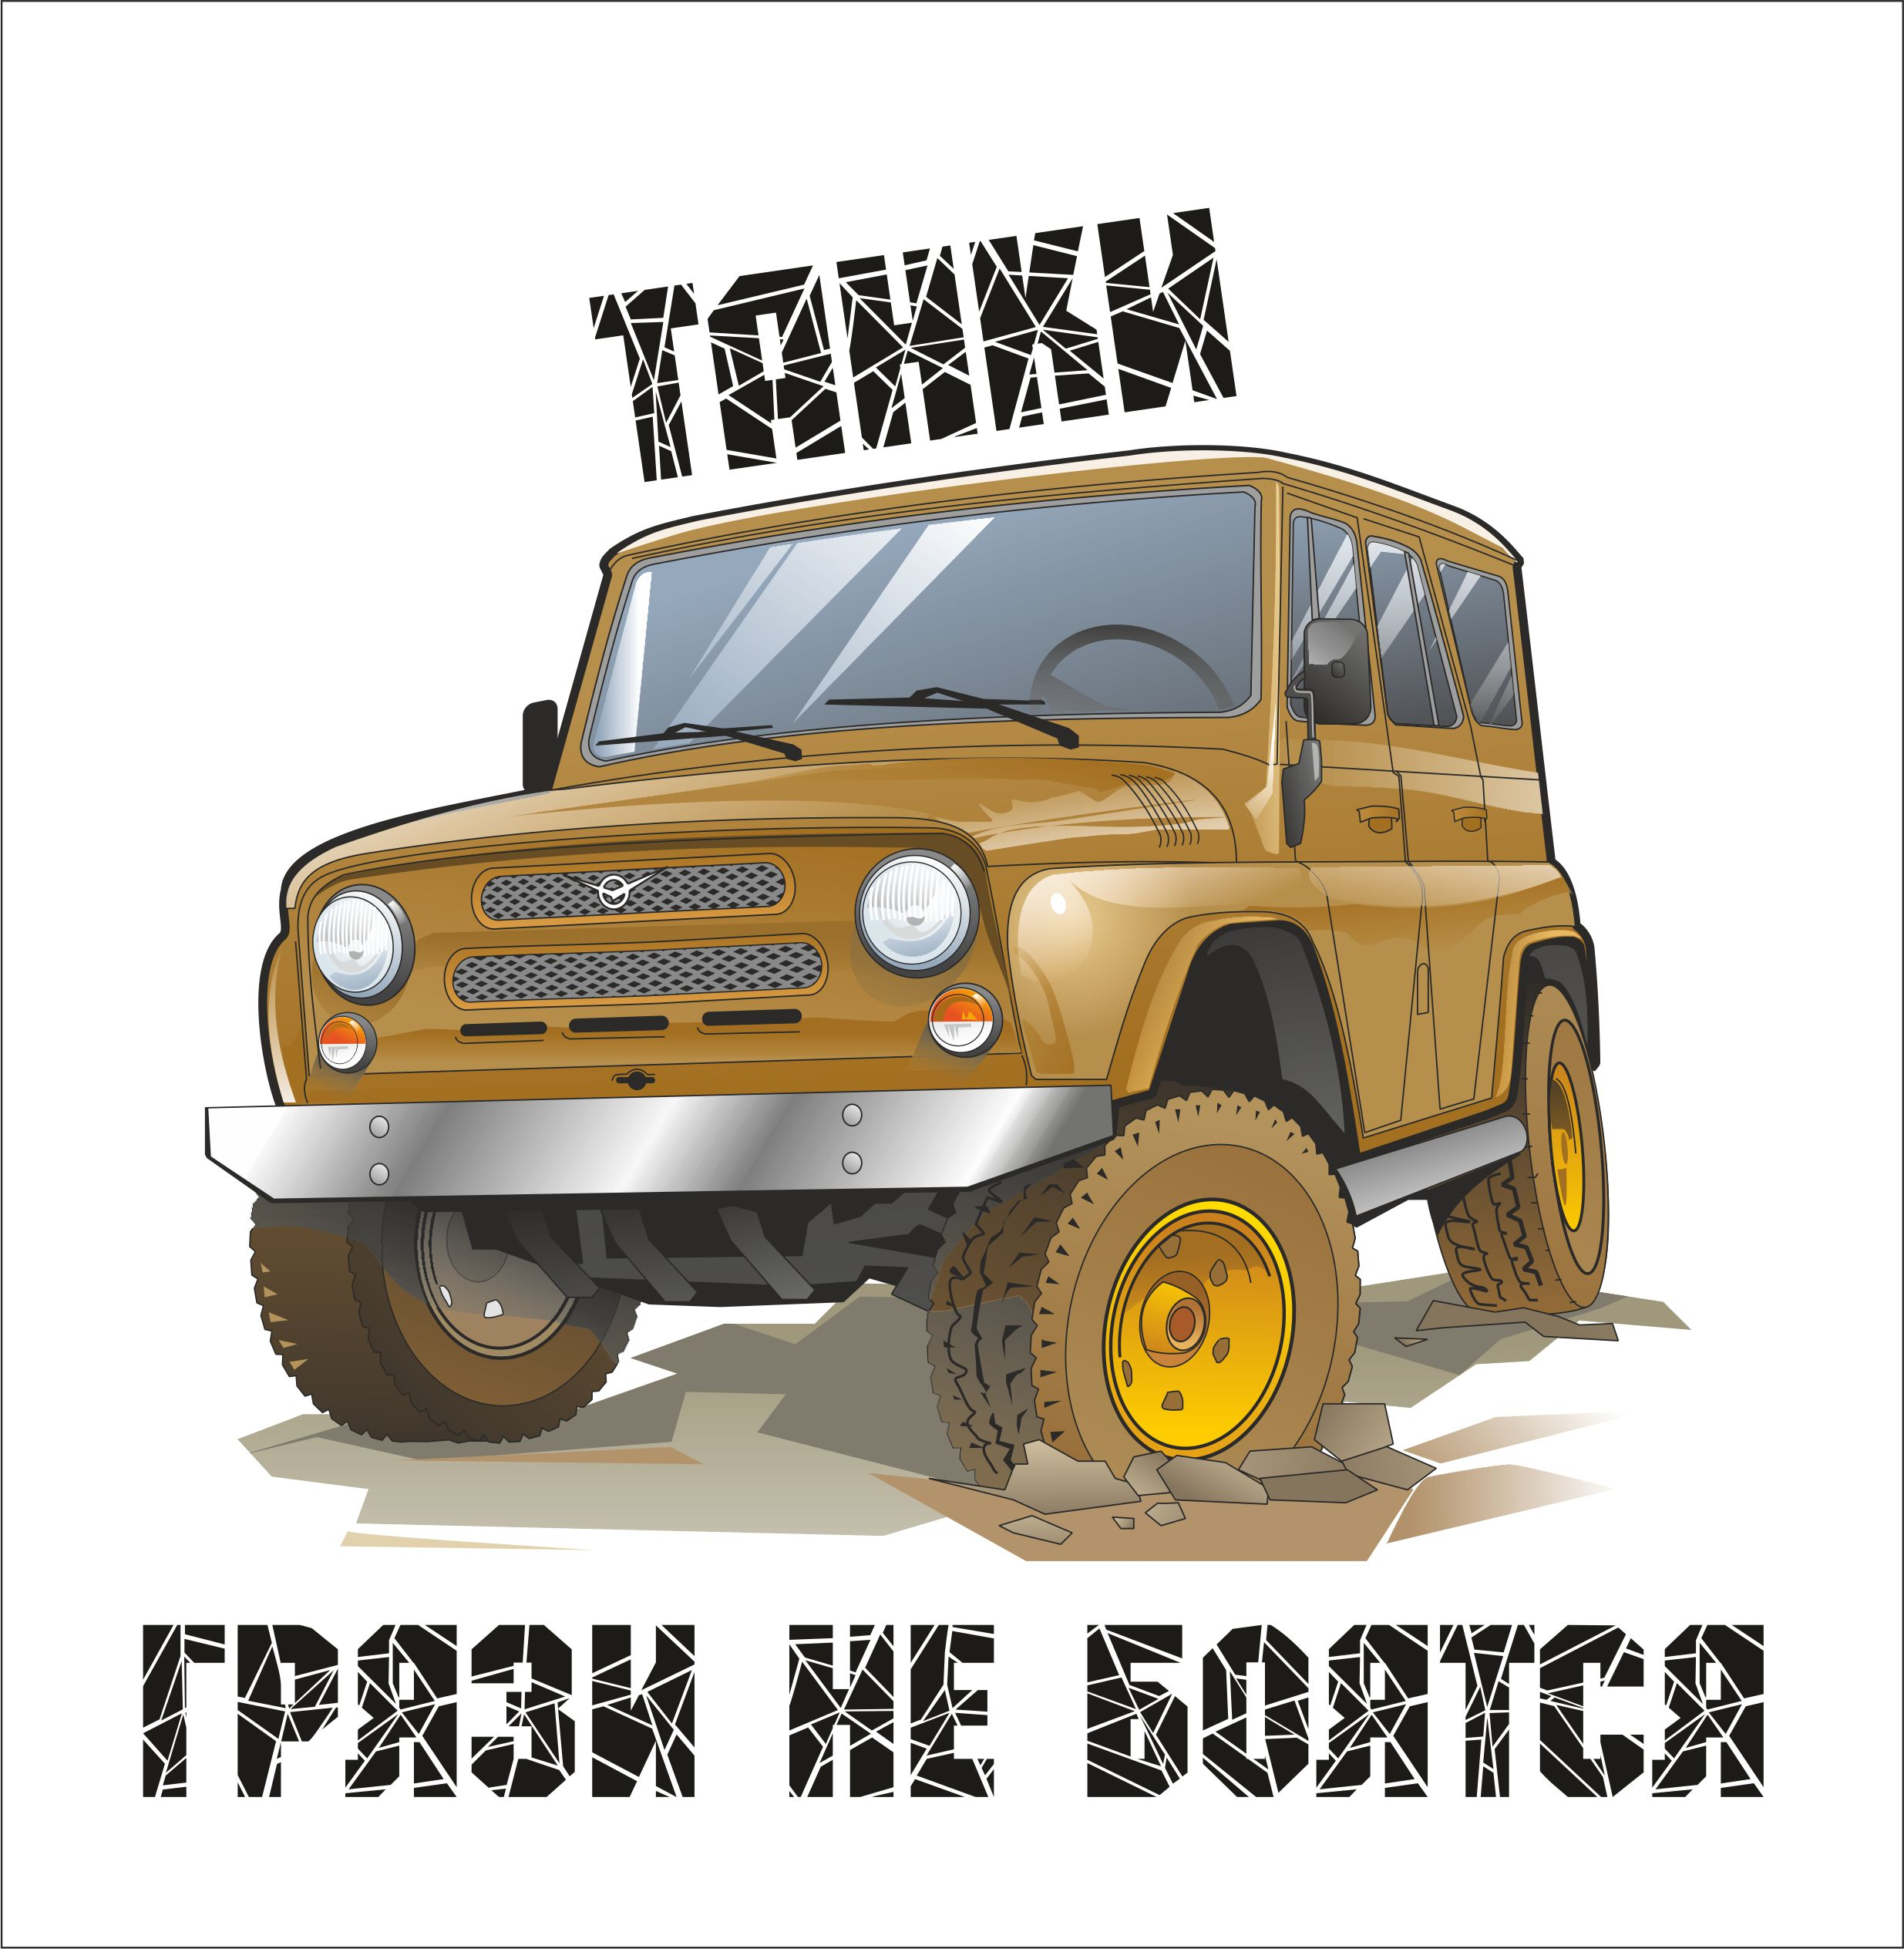 Tanks not afraid of dirt! vector image in Corel Draw